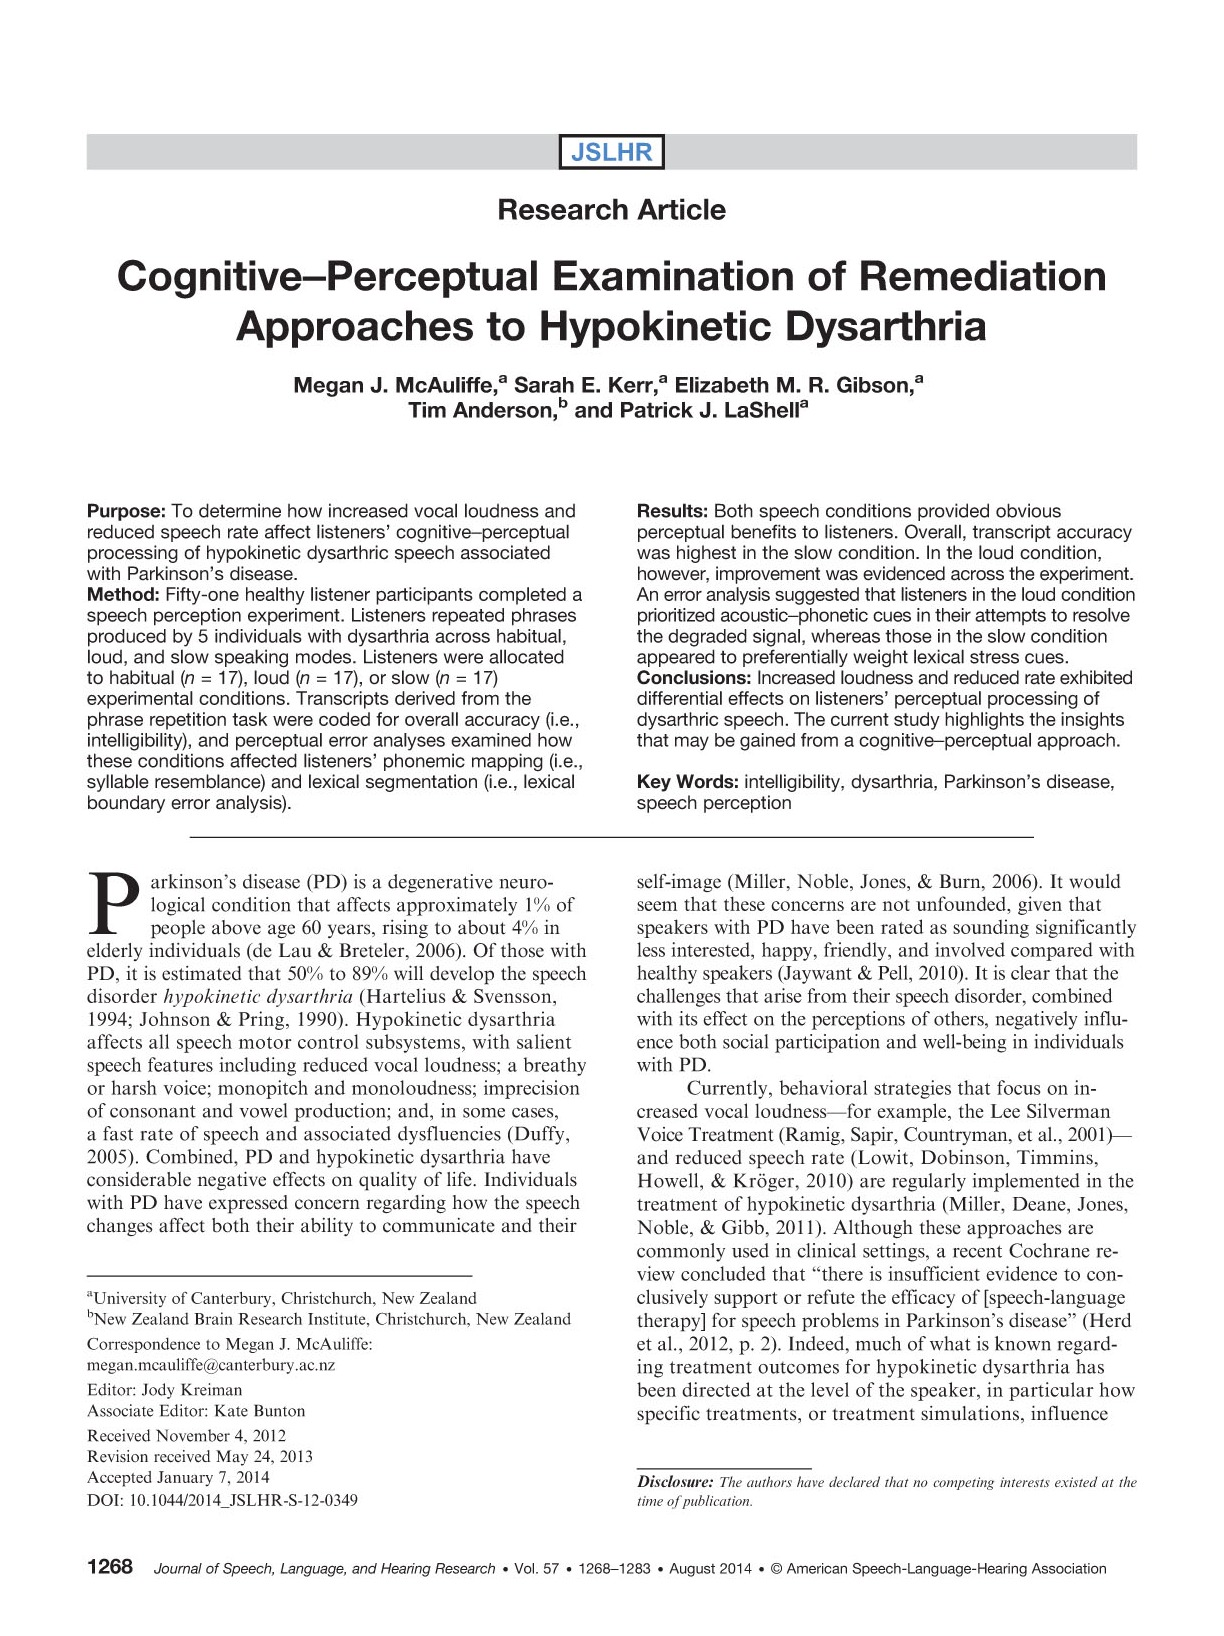 Download Cognitive-perceptual examination of remediation approaches to hypokinetic dysarthria.